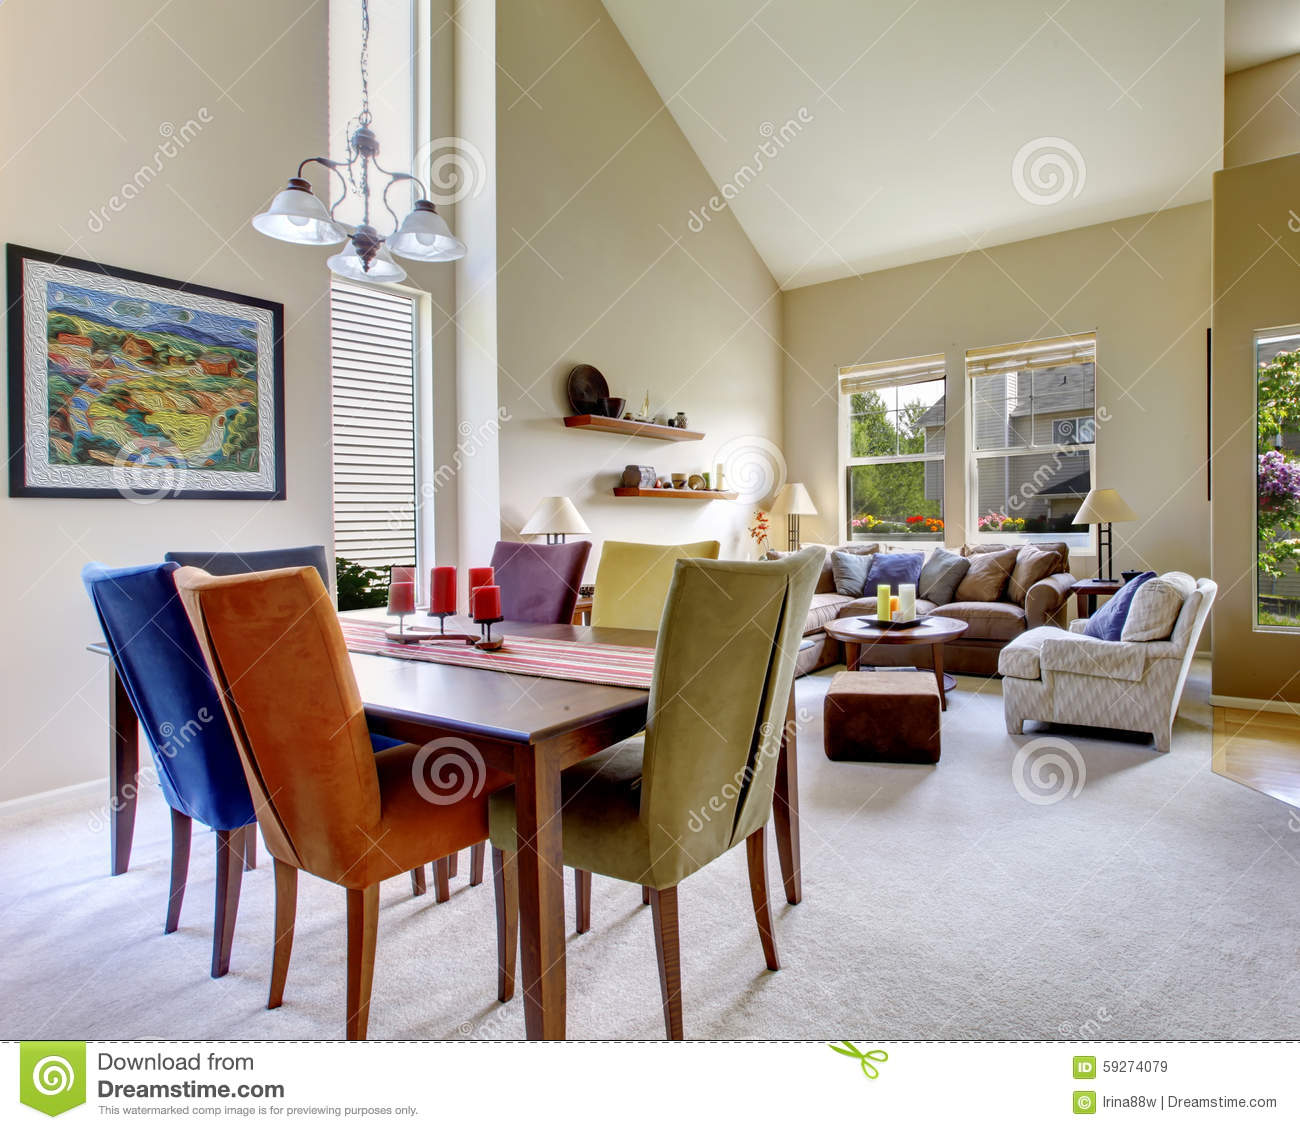 Large Beige Bright Living Room With Dining Room Table With